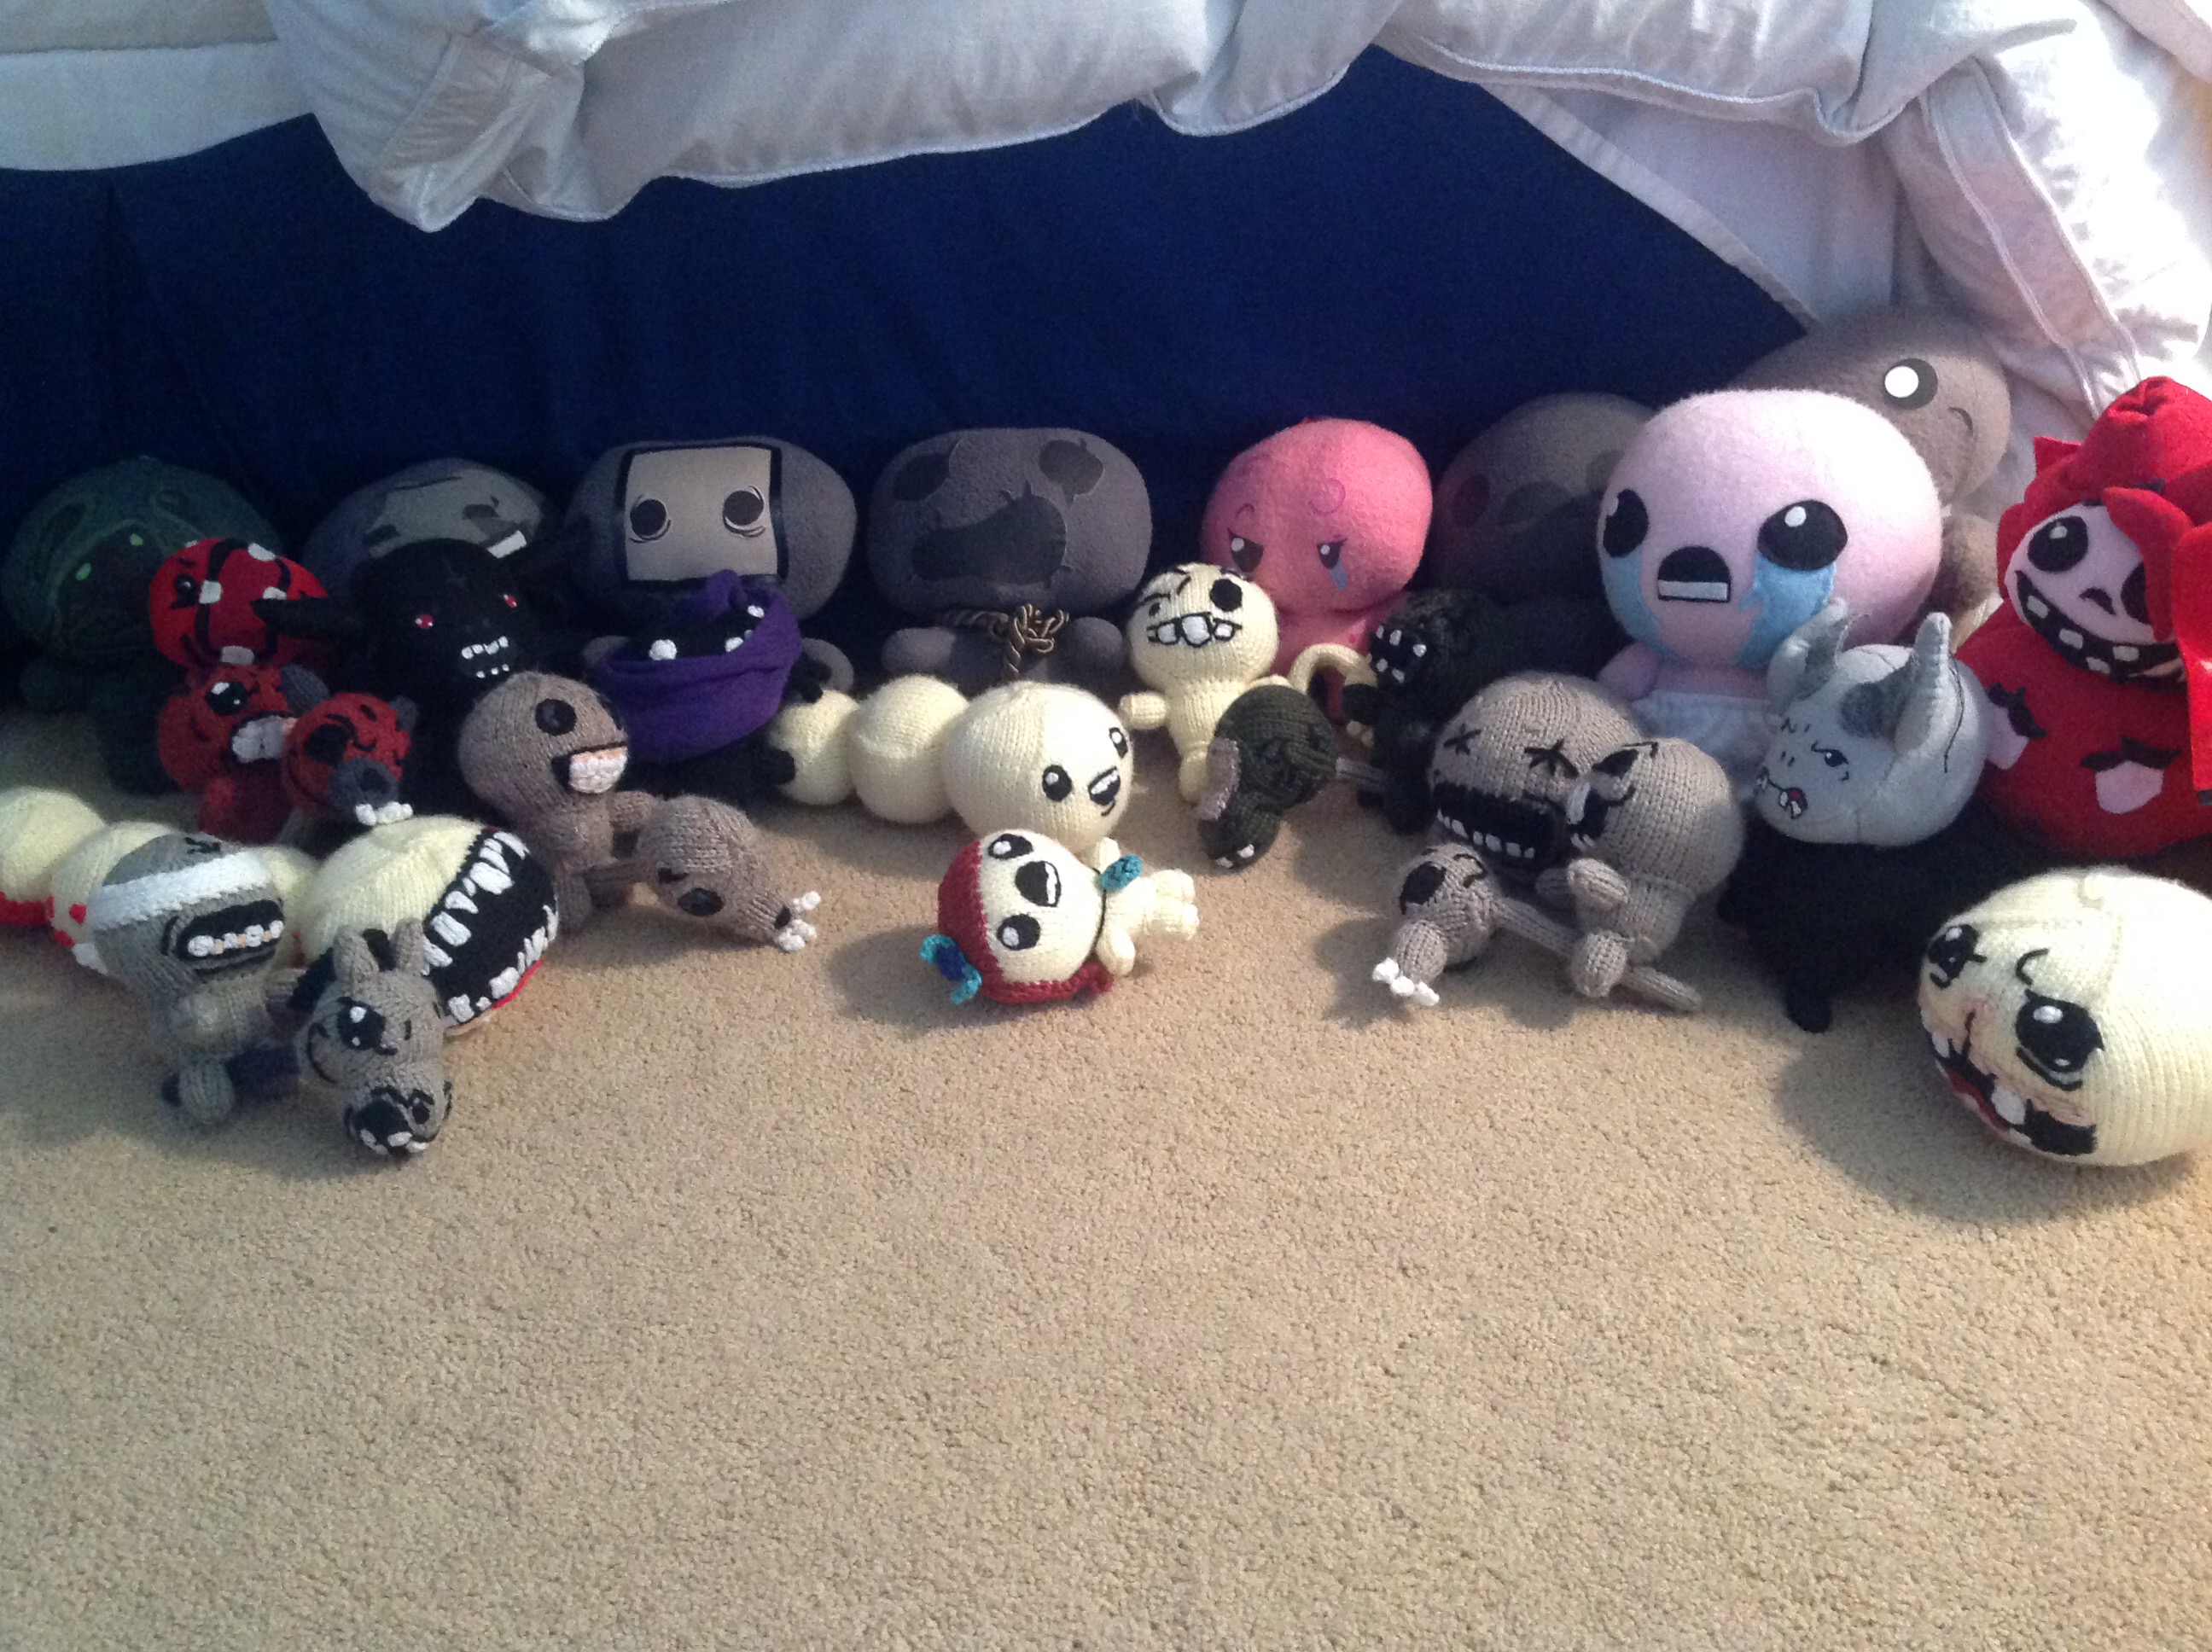 The Binding of Isaac Plush Collection. by LuigiFan00001